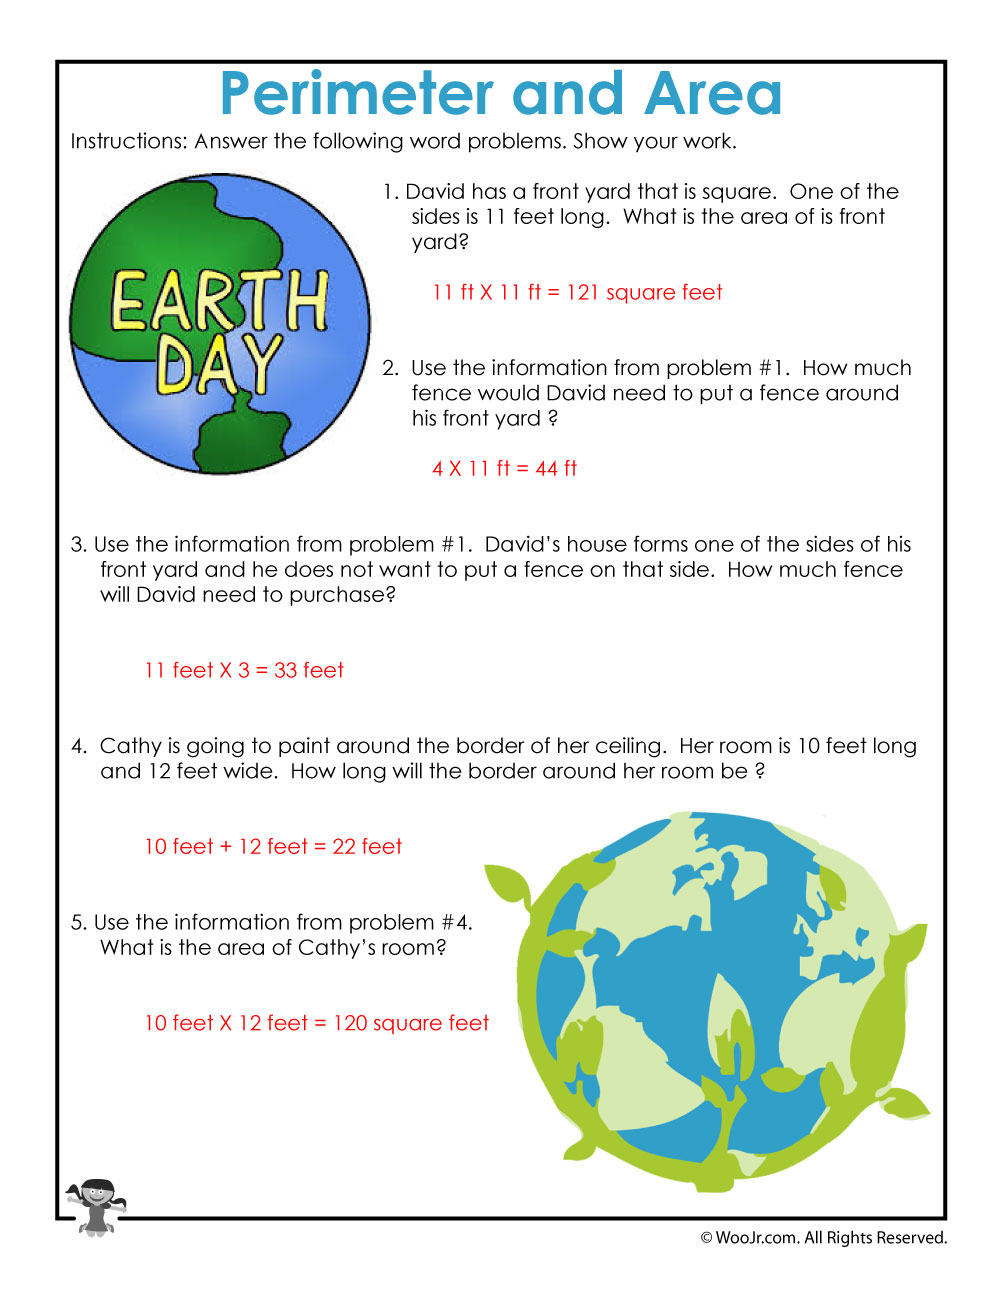 earth day word problem math worksheet answer key woo jr kids activities. Black Bedroom Furniture Sets. Home Design Ideas